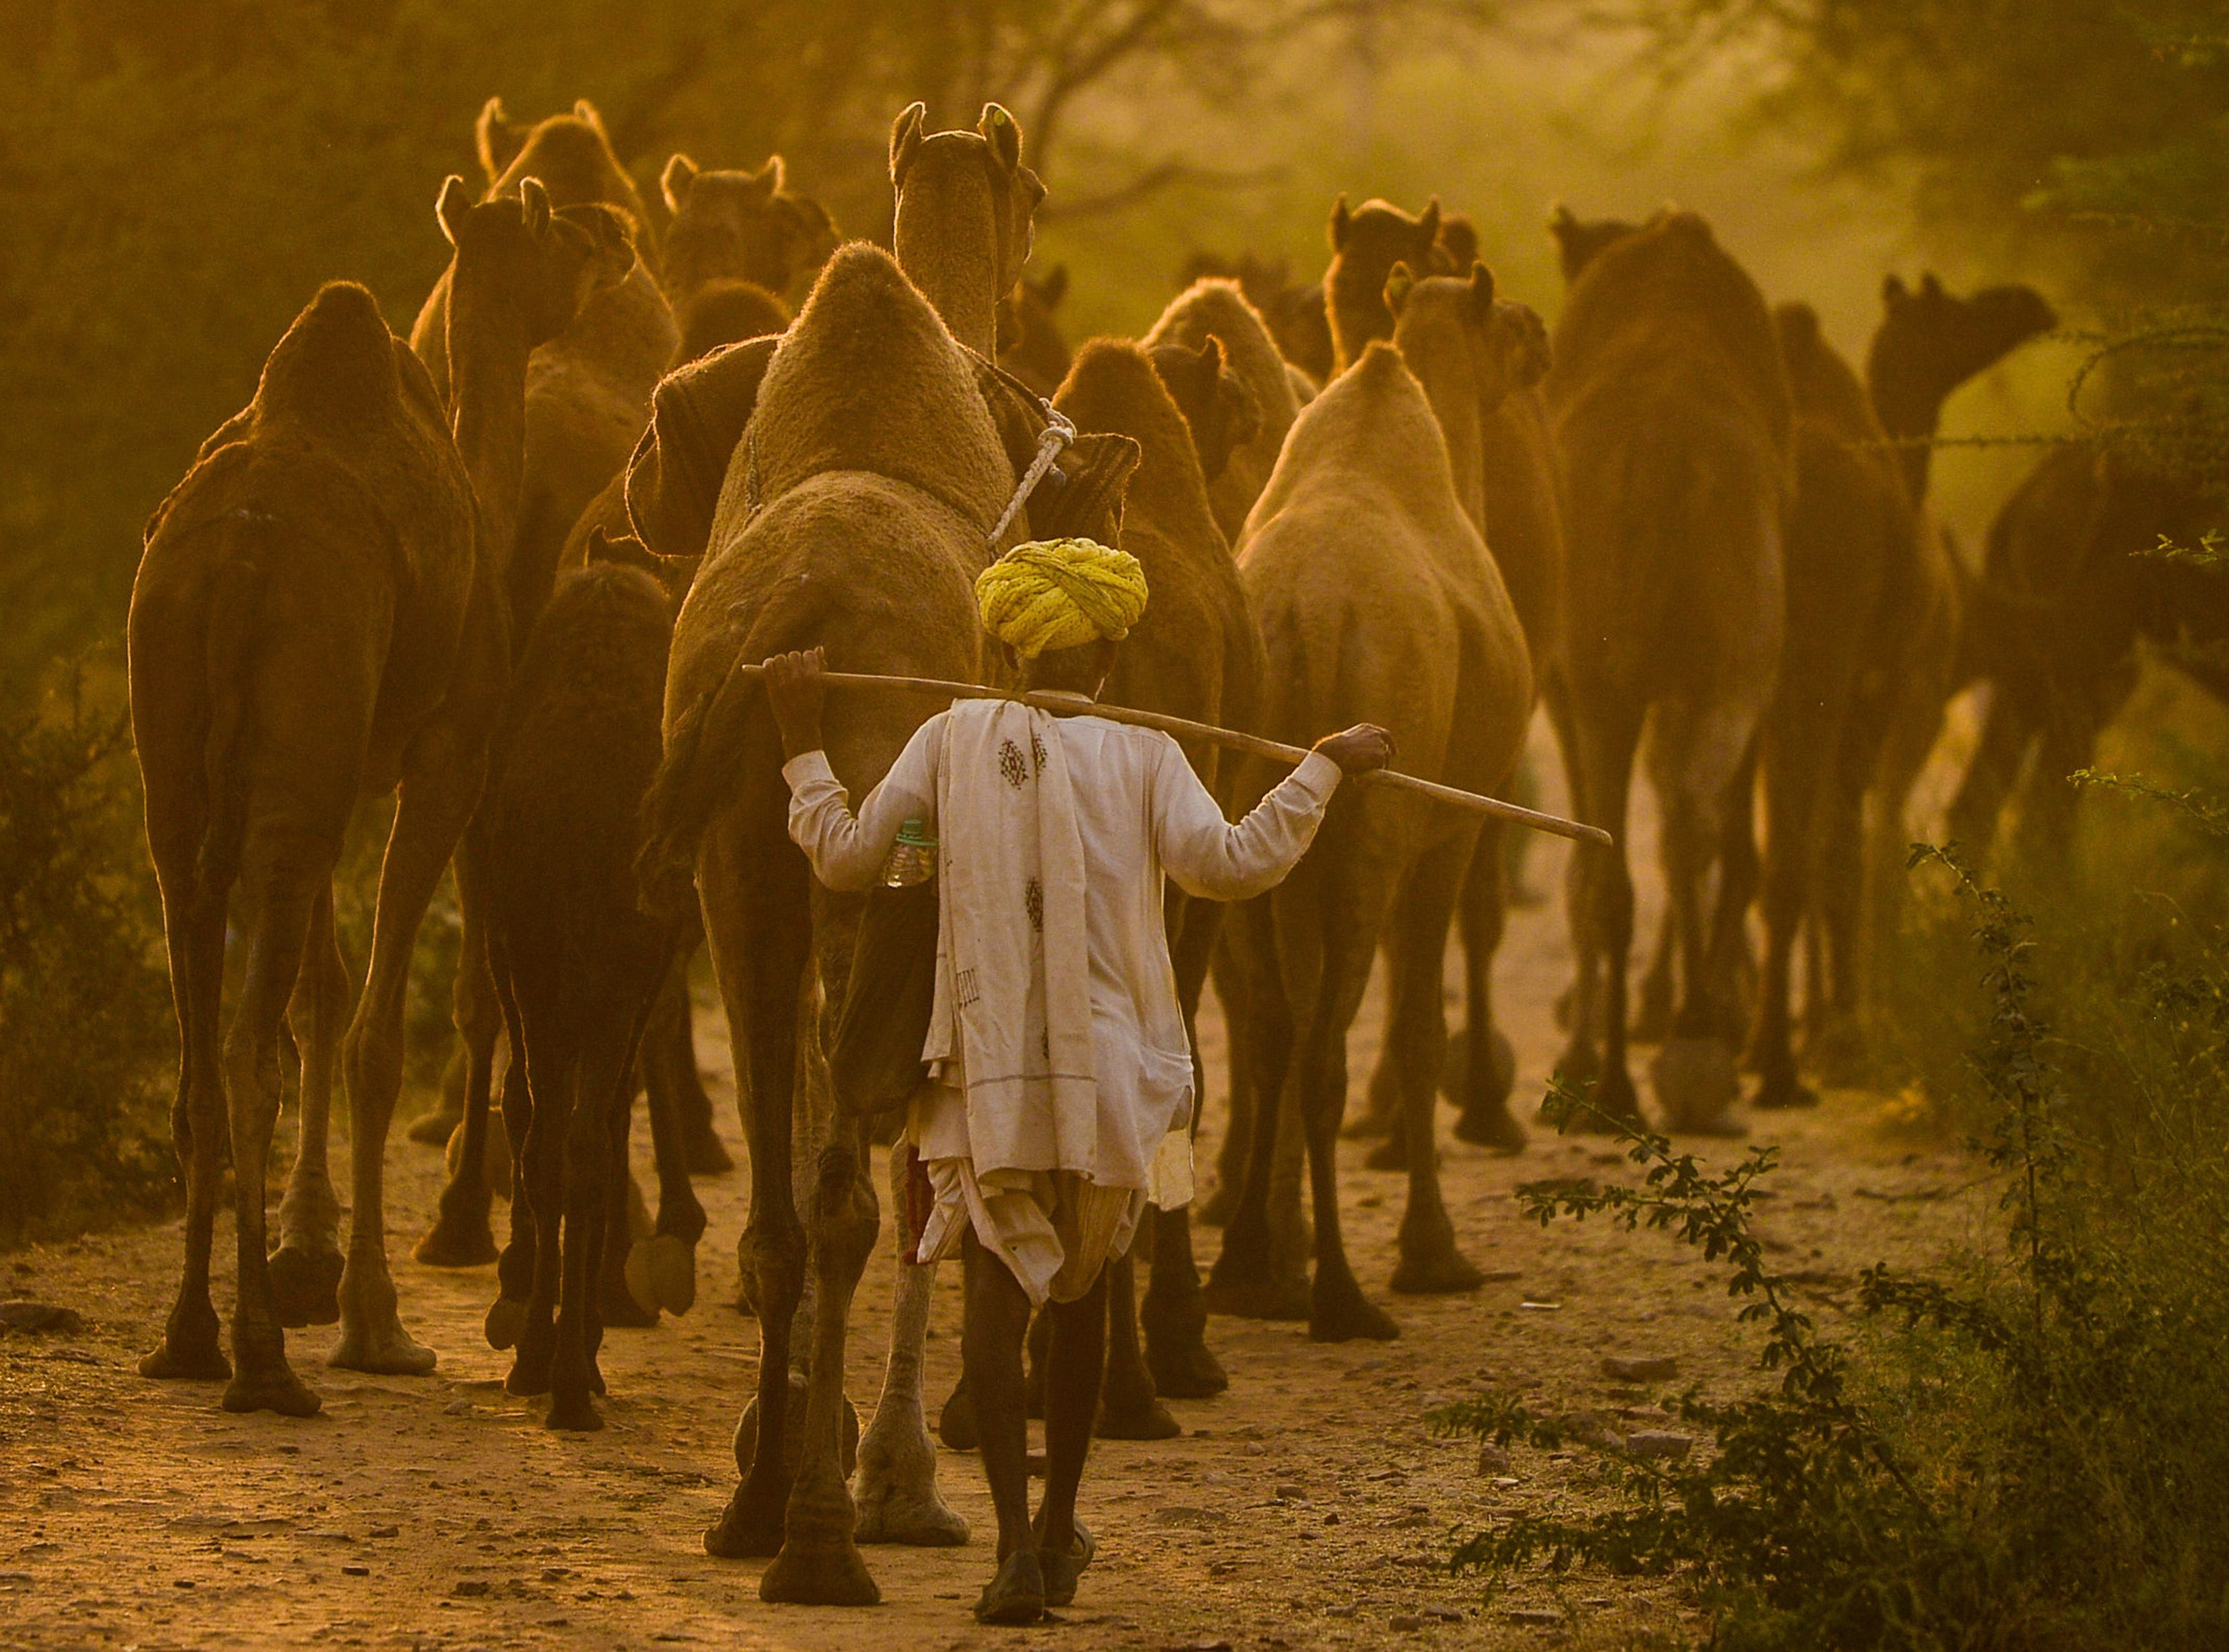 A camel herder walks along his camels at the end of the Pushkar Camel Fair in India on Nov. 24, 2018.  Thousands of livestock traders from the region come to the annual five-day fair where livestock, mainly camels, are traded.